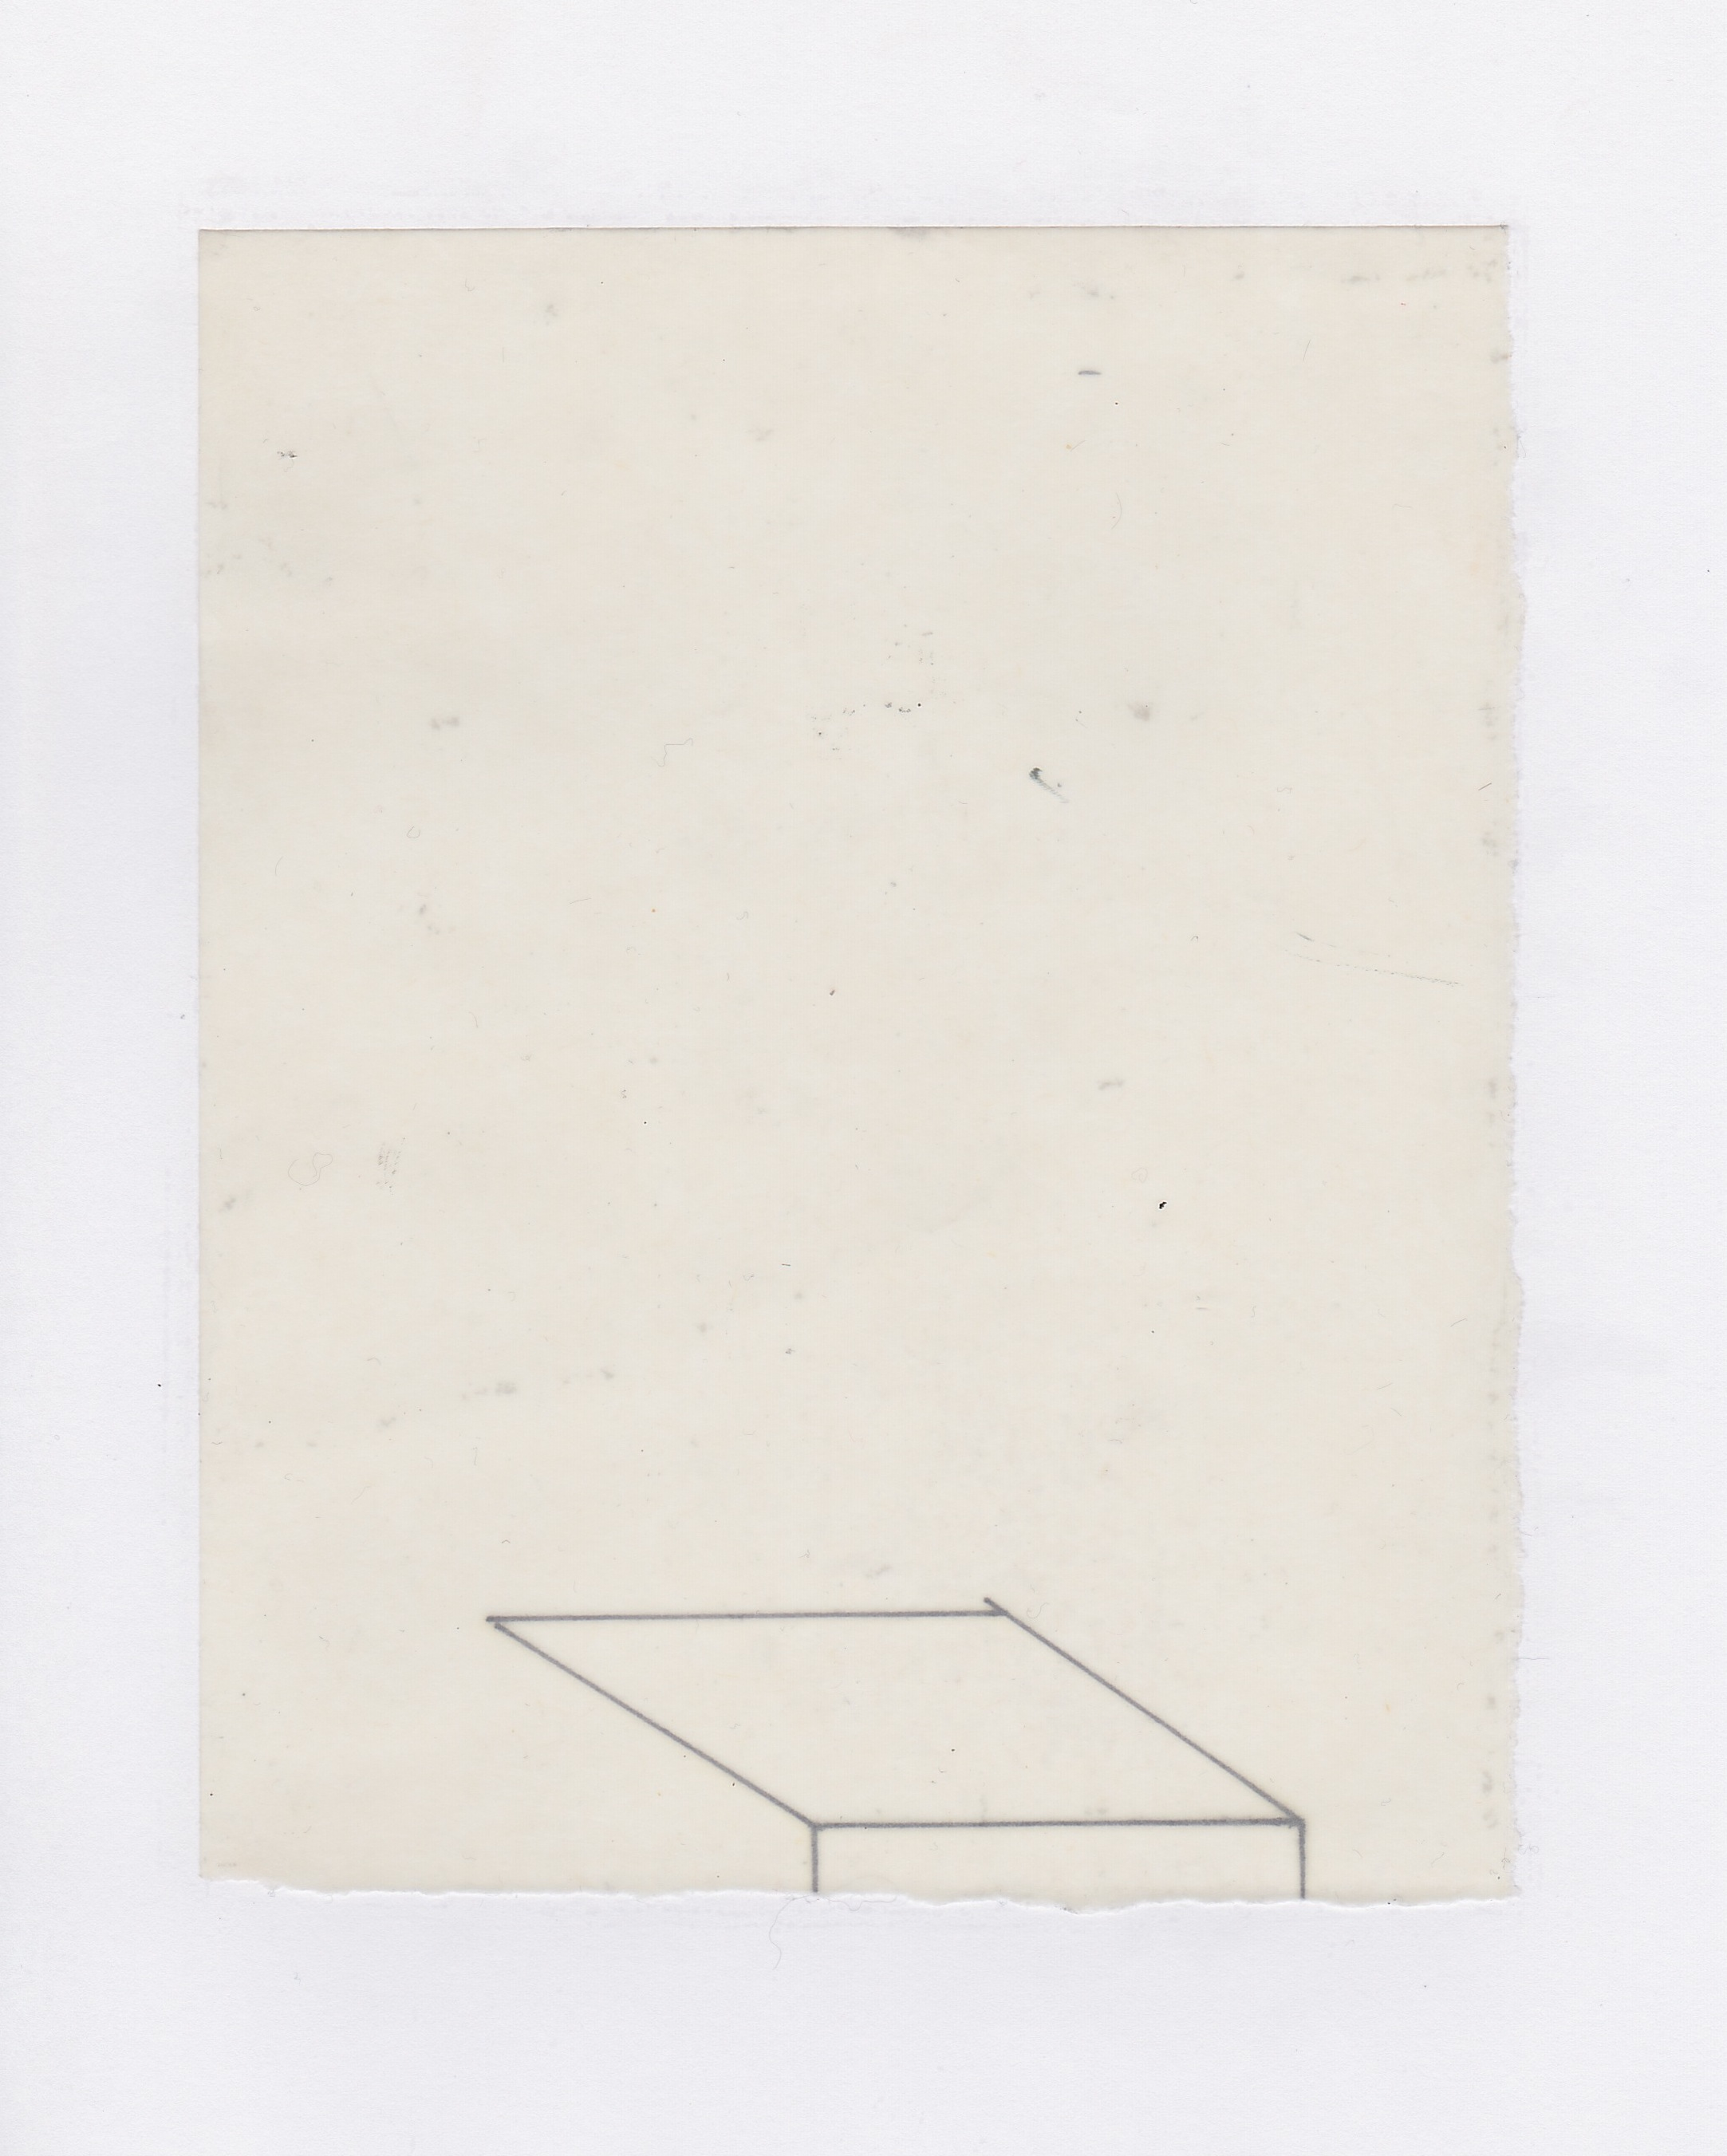 Untitled (the city, observations 04A)  Pencil on oiled fabriano paper.  140mm x 180mm  December 2013.